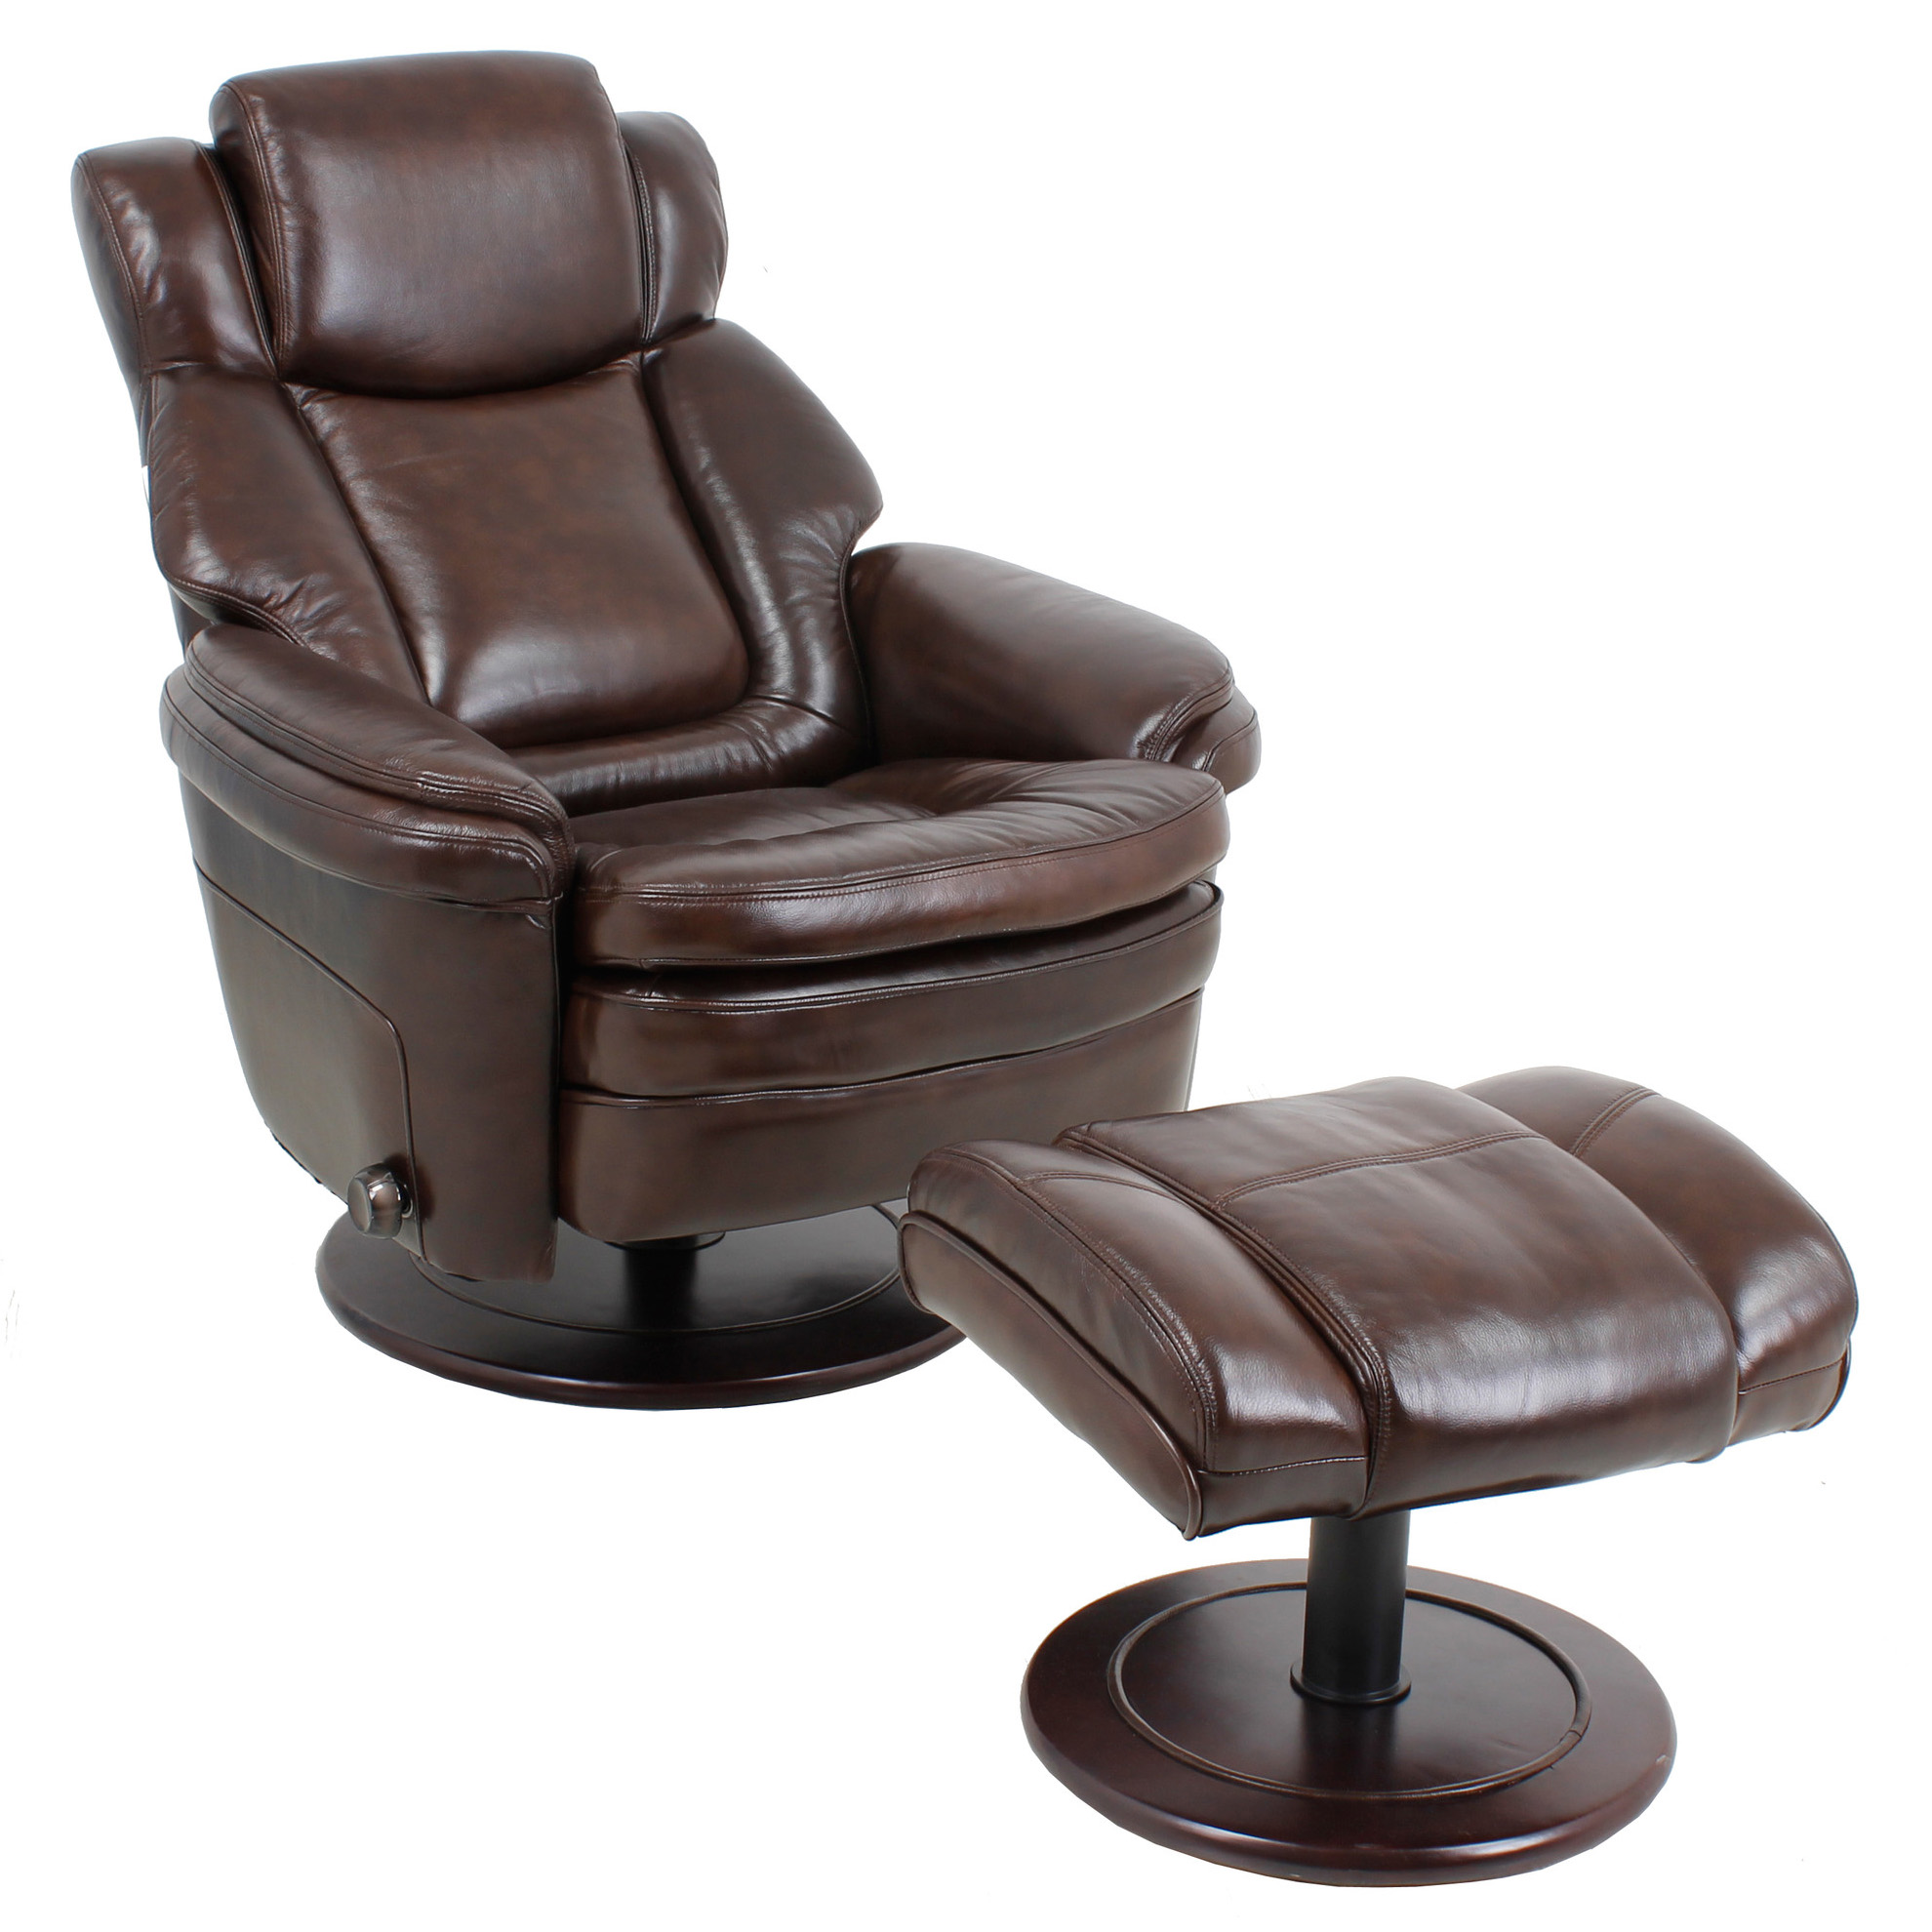 modern leather recliner swivel chair cool bean bag chairs barcalounger eclipse ii and ottoman